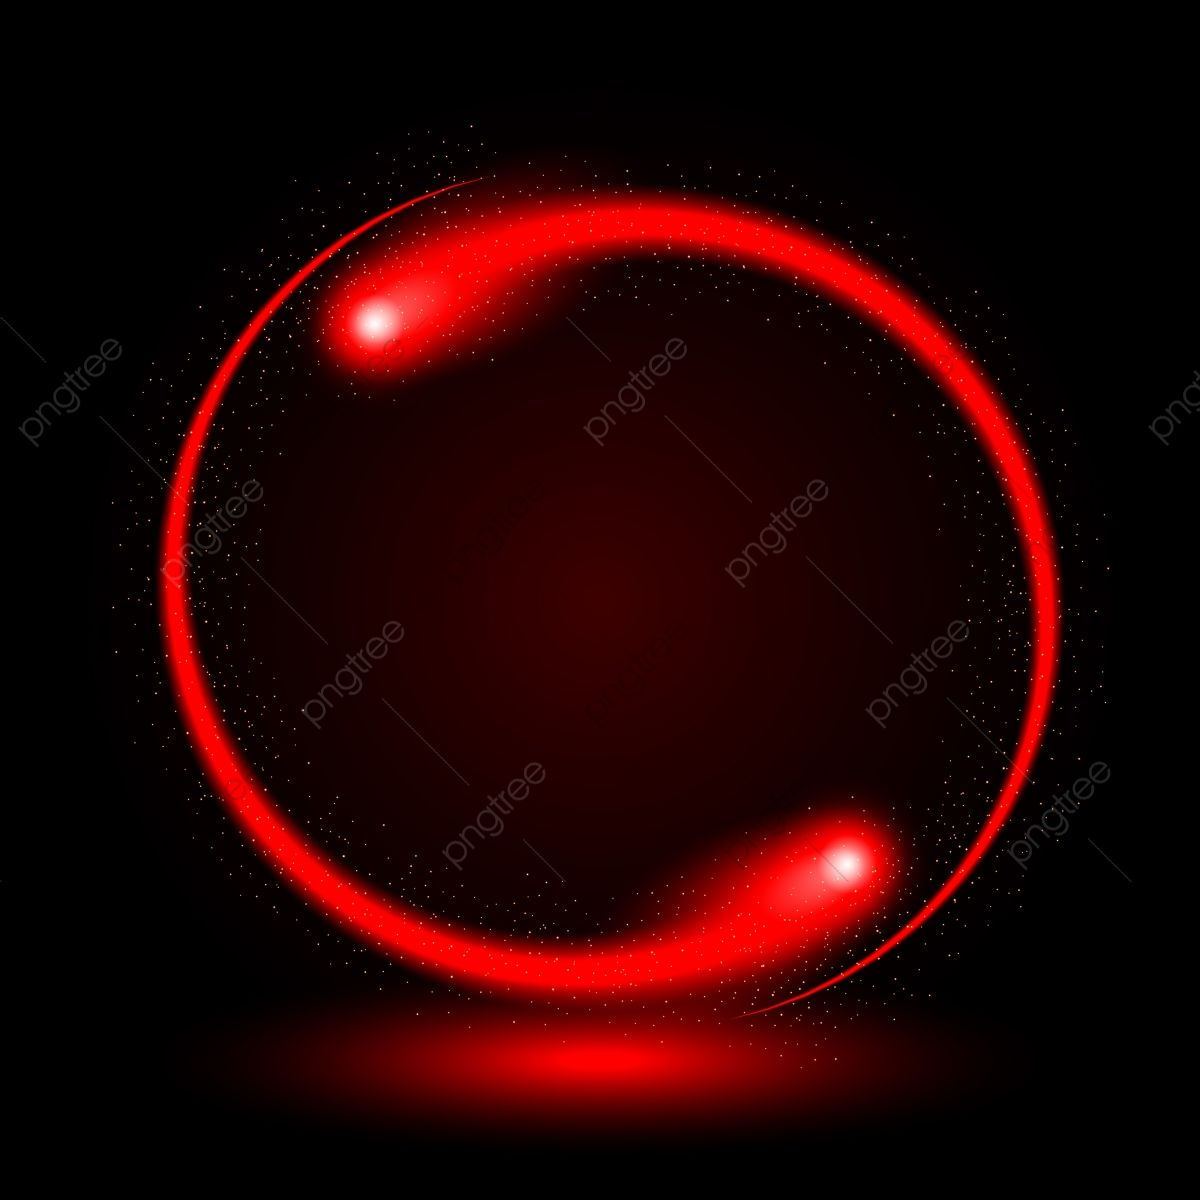 Abstract Circle Light Red Frame Vector Background Red Circle Light Png And Vector With Transparent Background For Free Download Vector Background Circle Light Red Frame